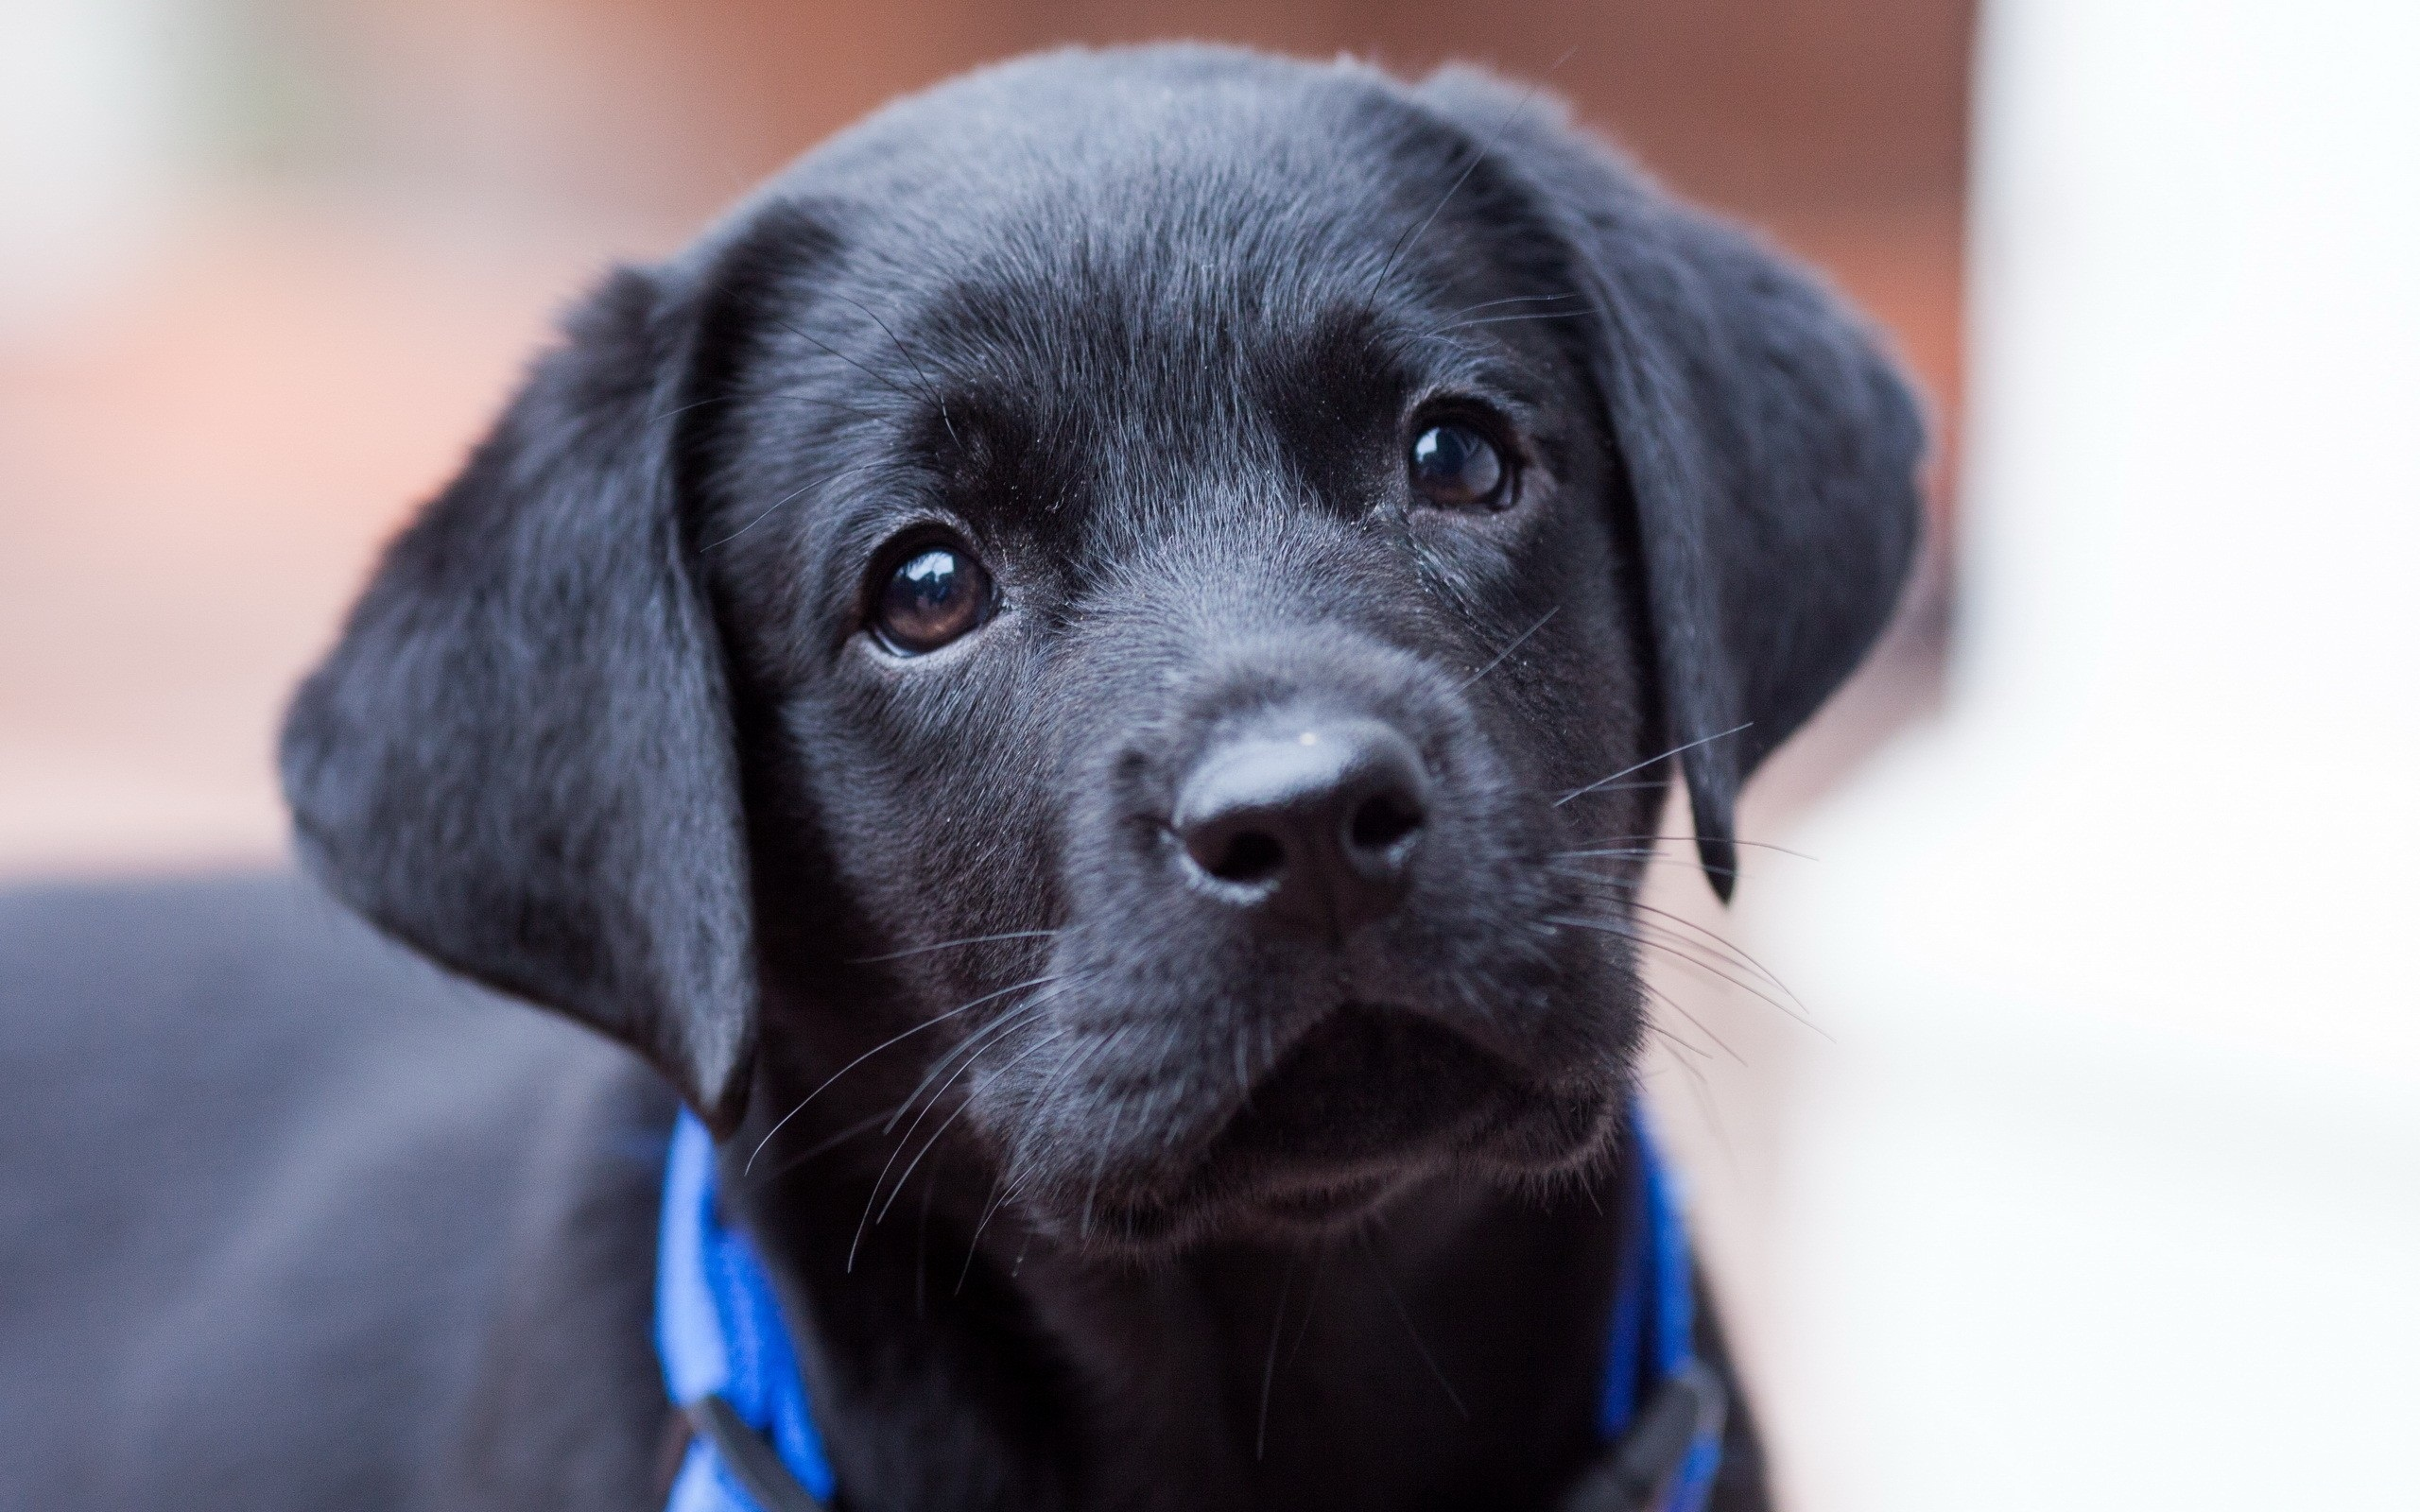 http://7-themes.com/data_images/out/59/6974349-cute-black-puppy.jpg